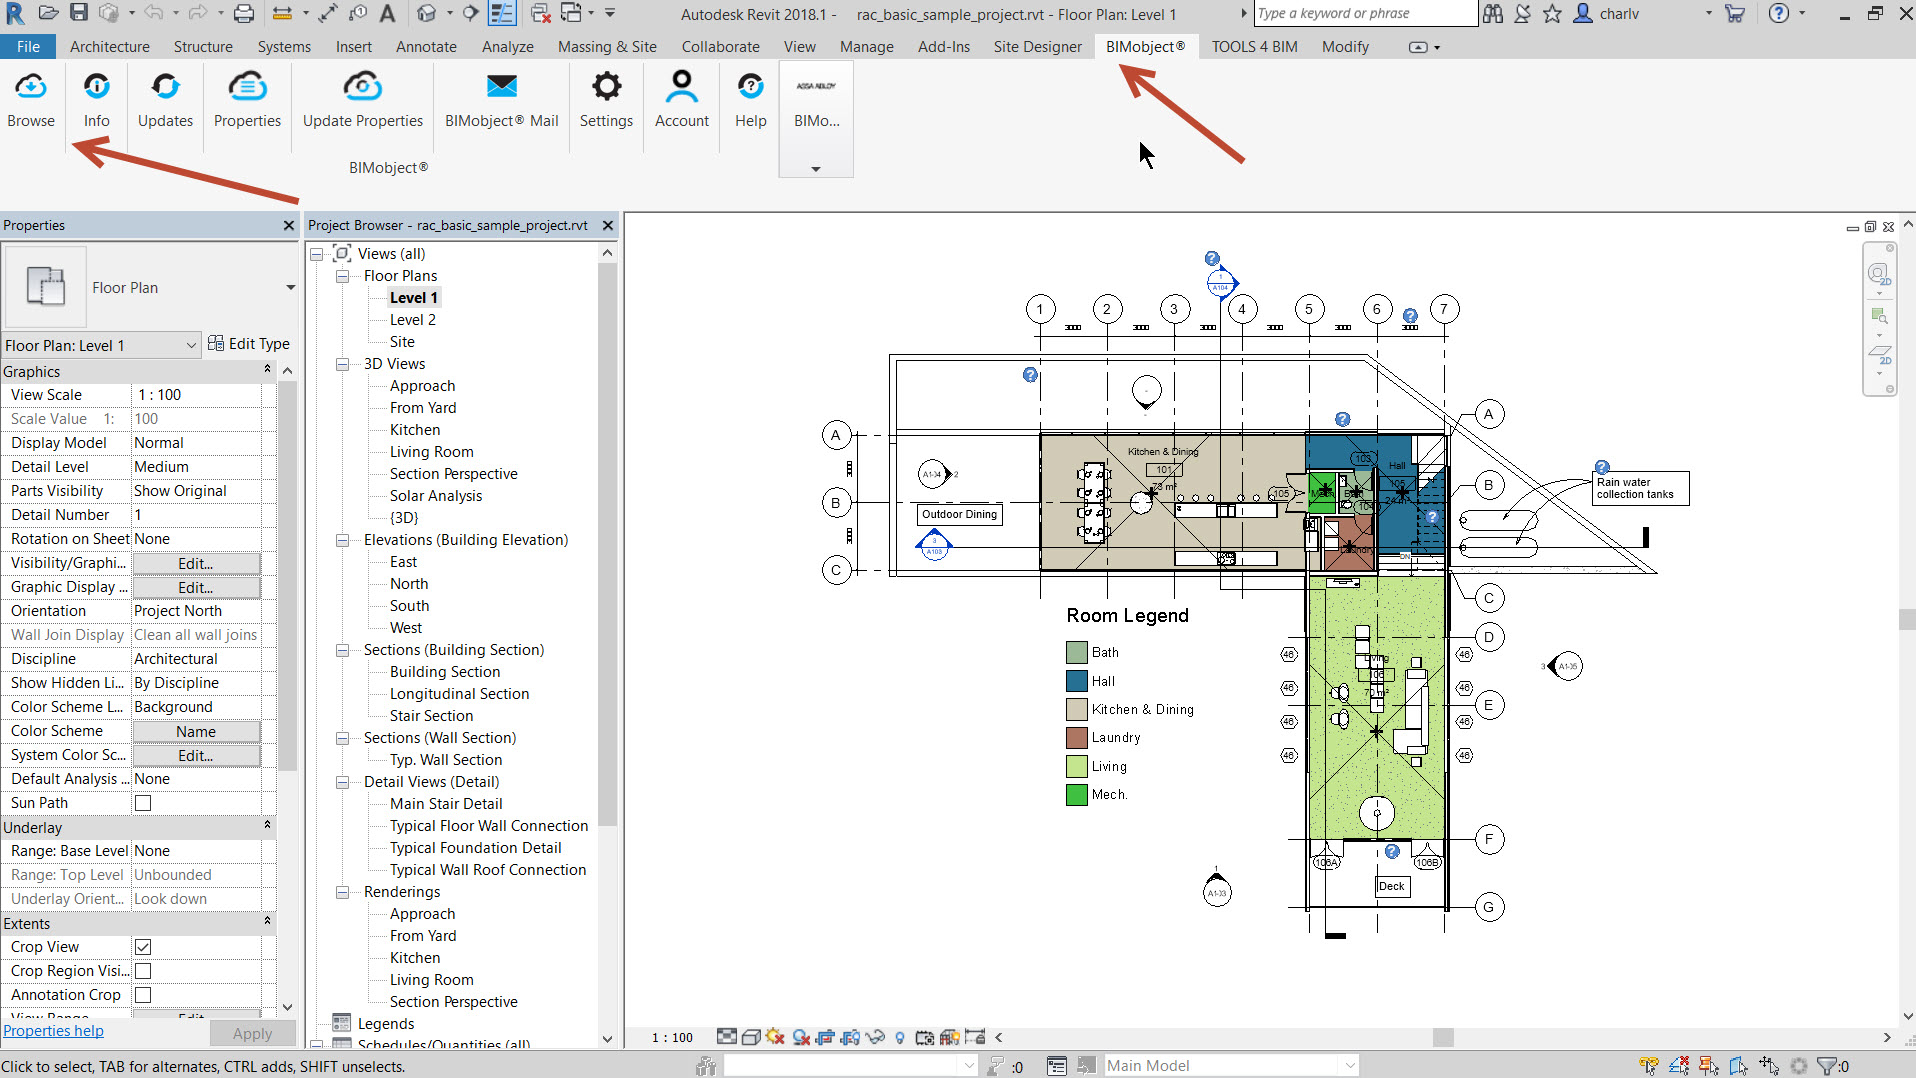 3b Free Revit content from BIMobject